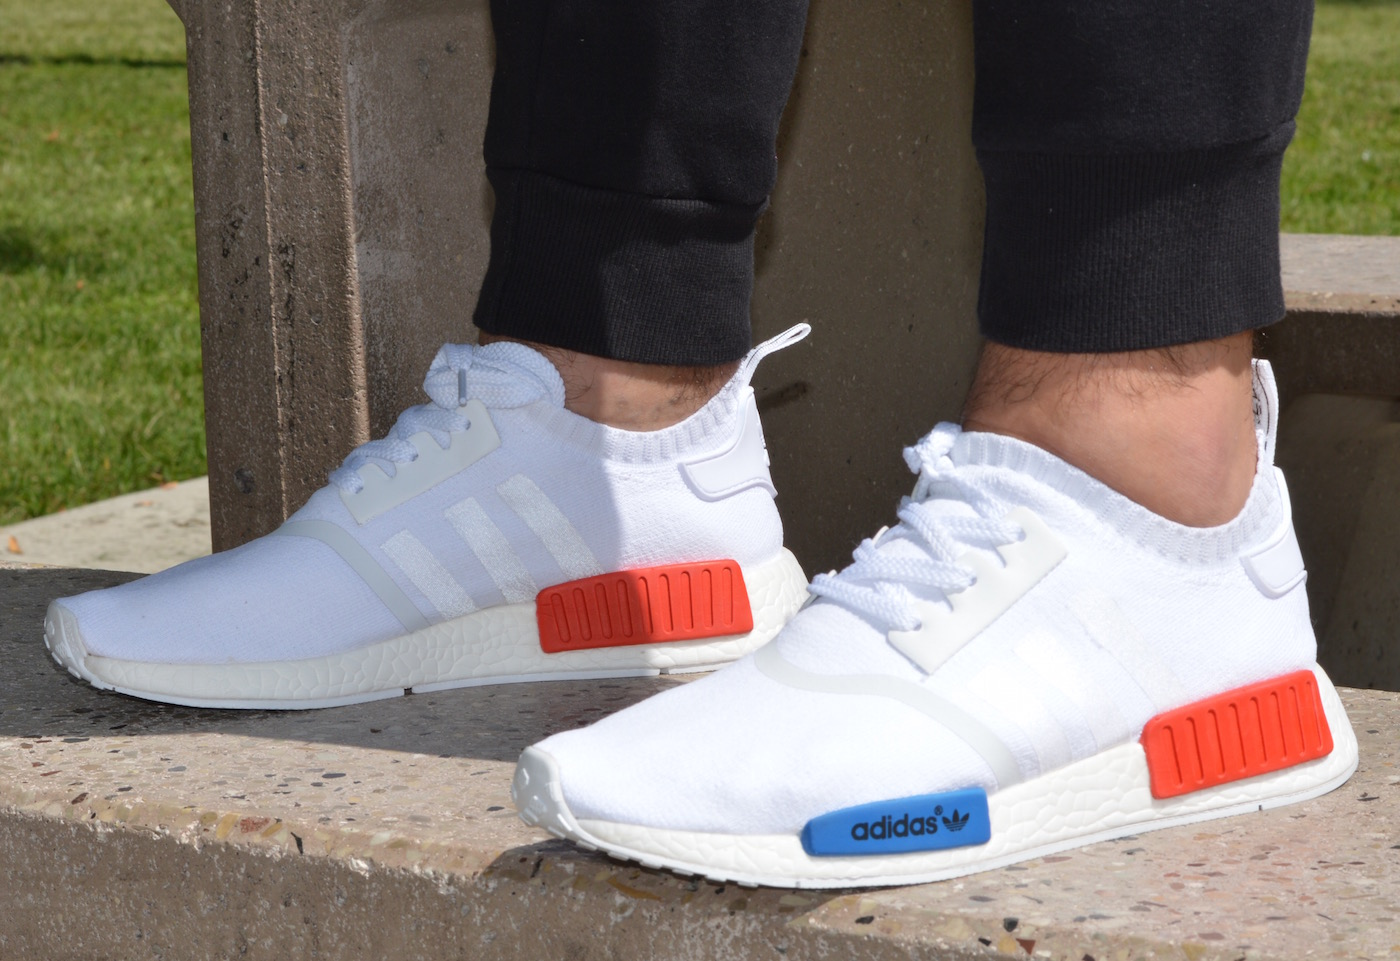 adidas NMD R1 Primeknit On Feet White Red Blue